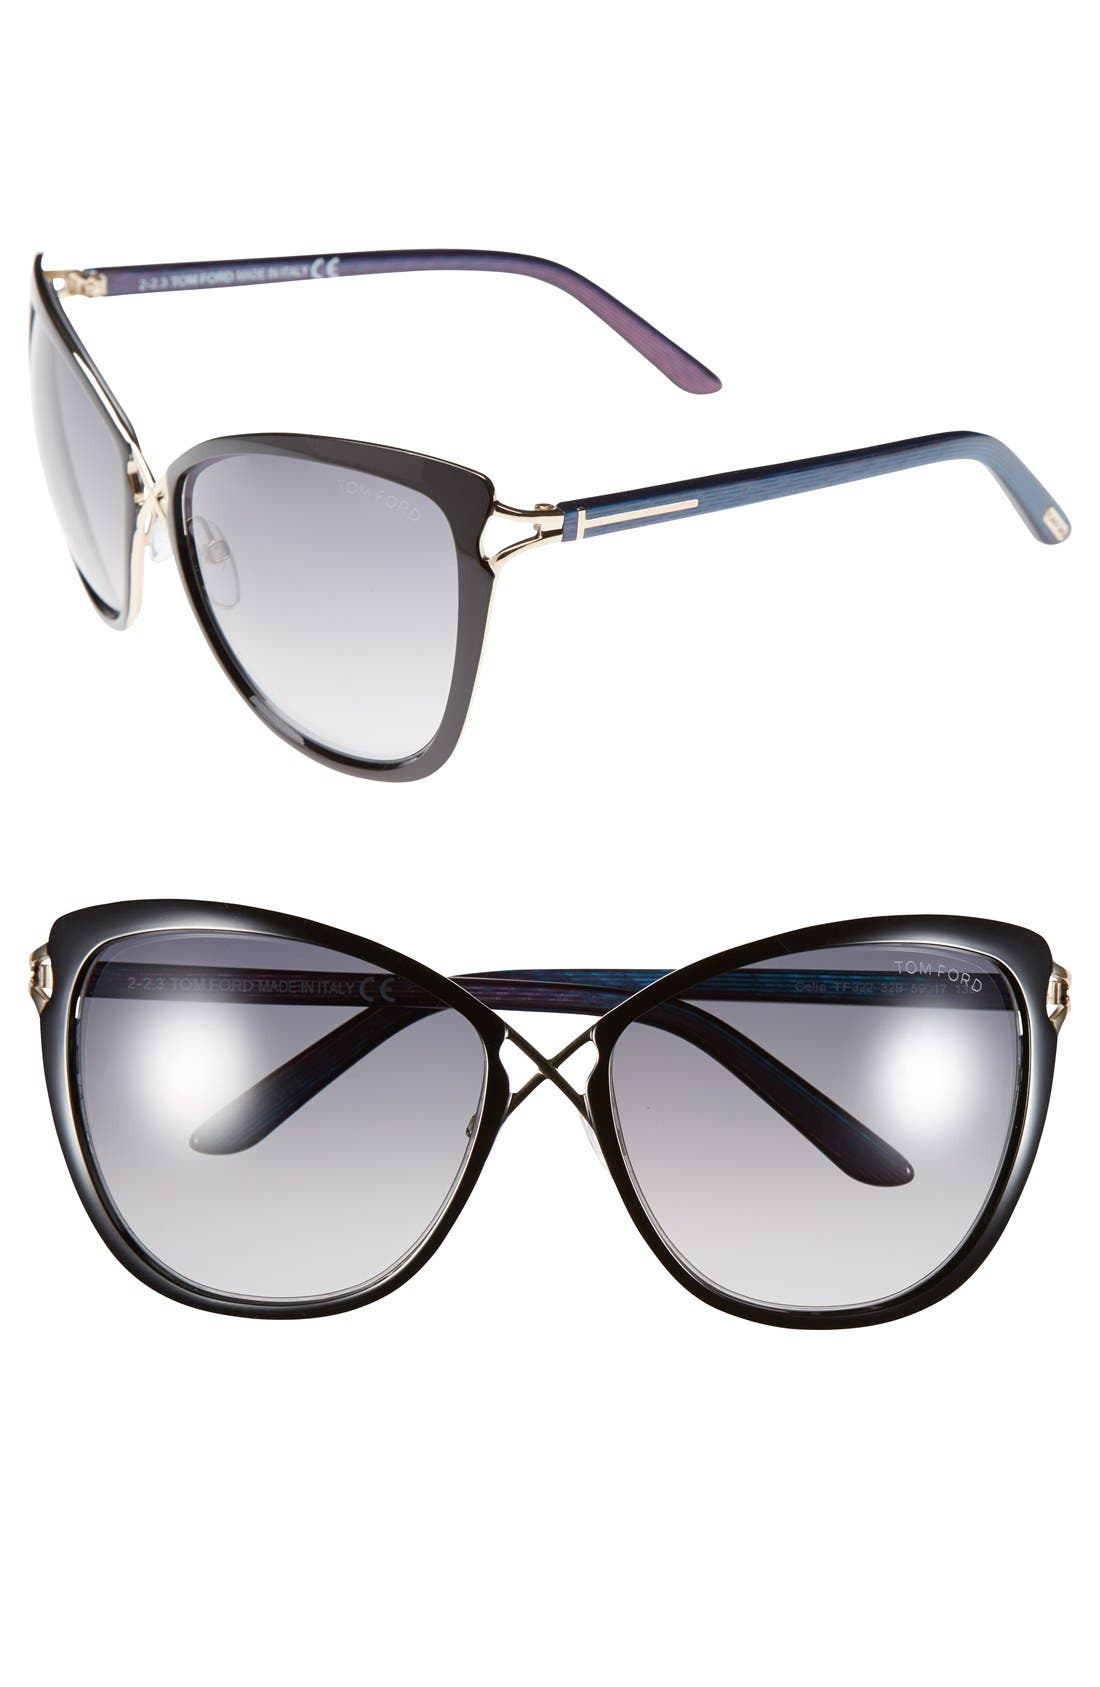 Main Image - Tom Ford 'Celia' 59mm Cat Eye Sunglasses